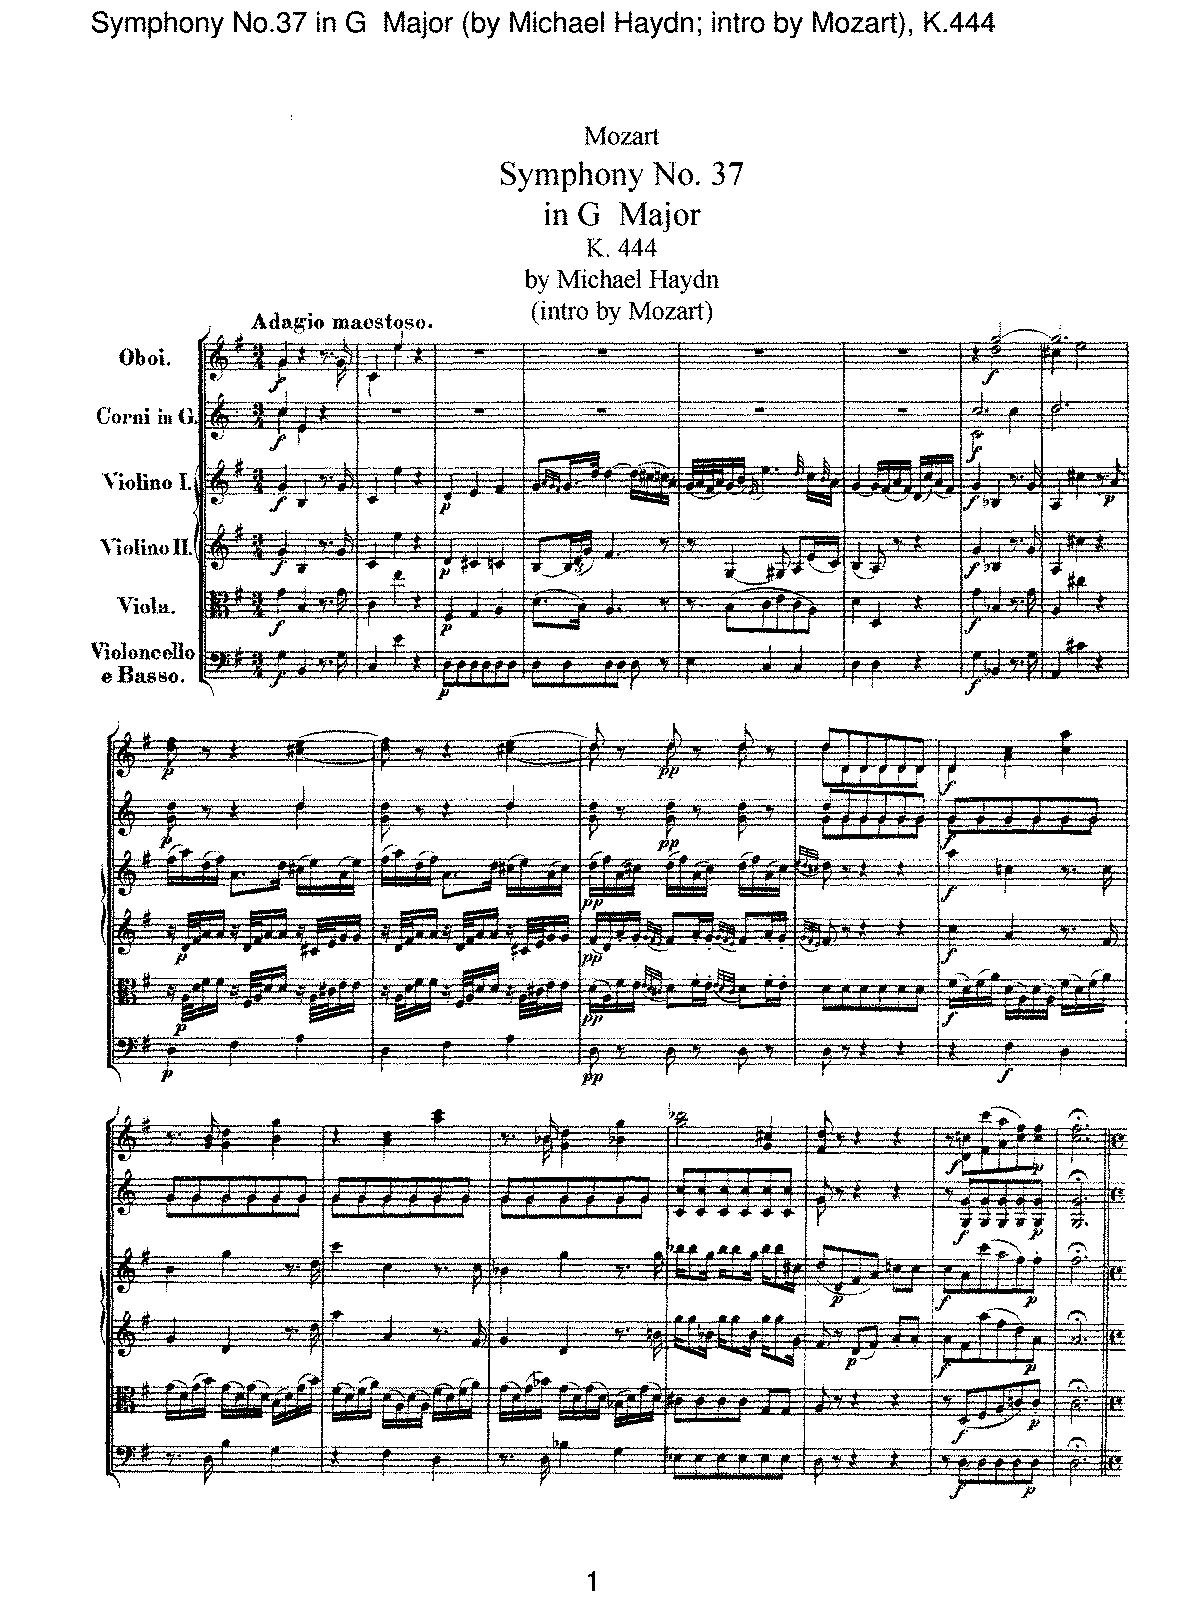 Mozart - Symphony No 37 in G Major (by Micheal Haydn-Intro by Mozart), K.444.pdf